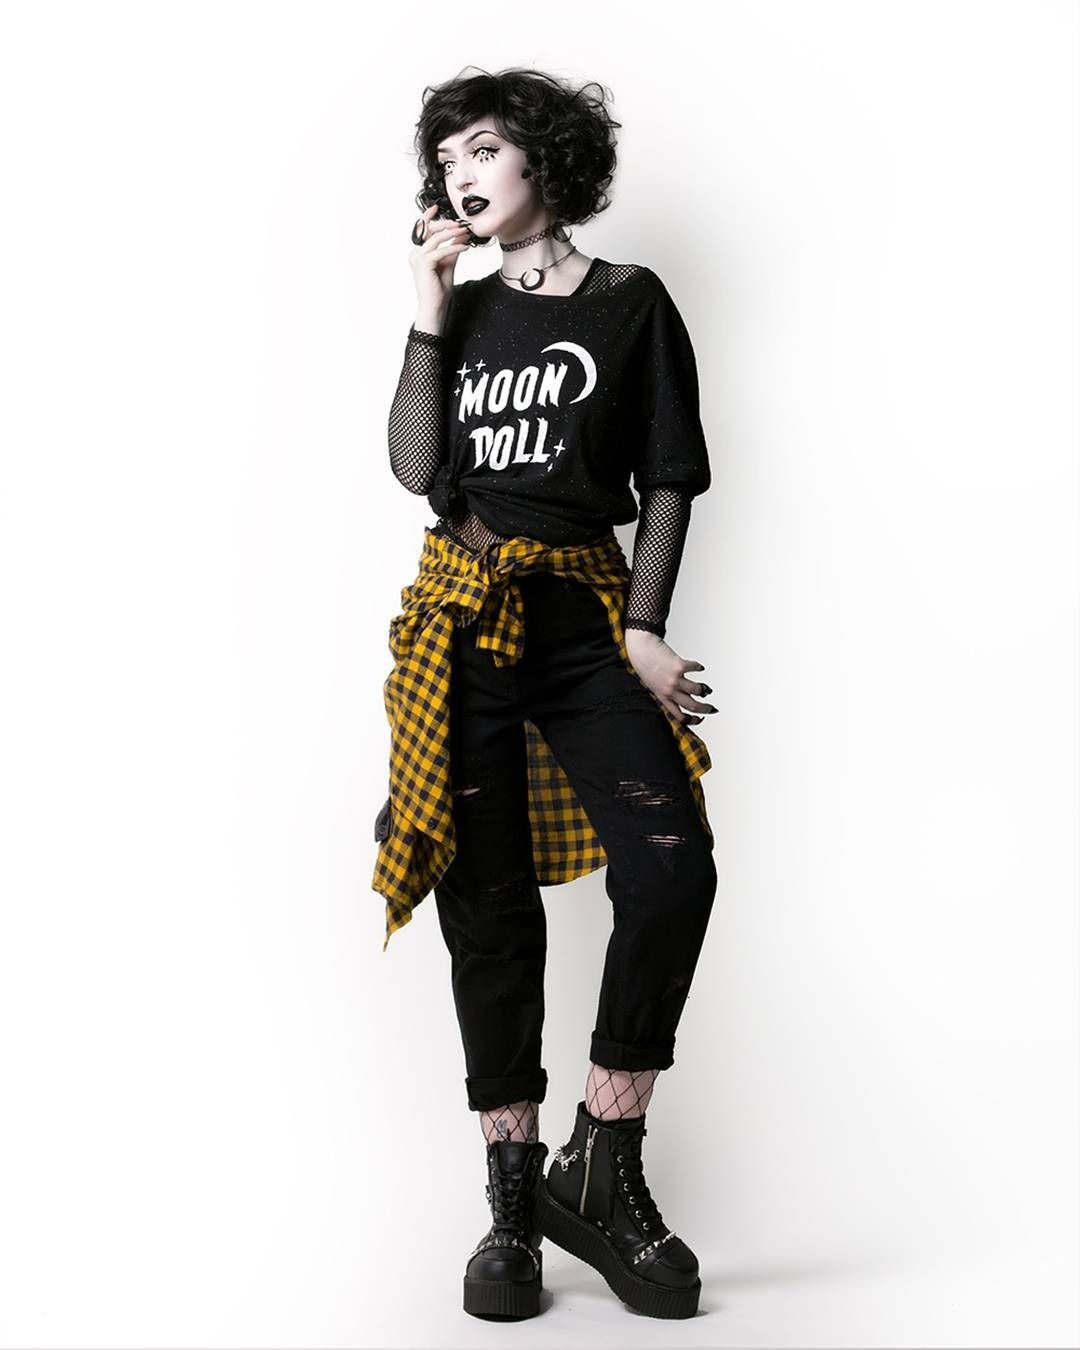 """Grungy Tumblr Outfits 2020 Ideas For Middle School rogueandwolf: """"Become a badass grunge goth with our NEW MoonDoll"""